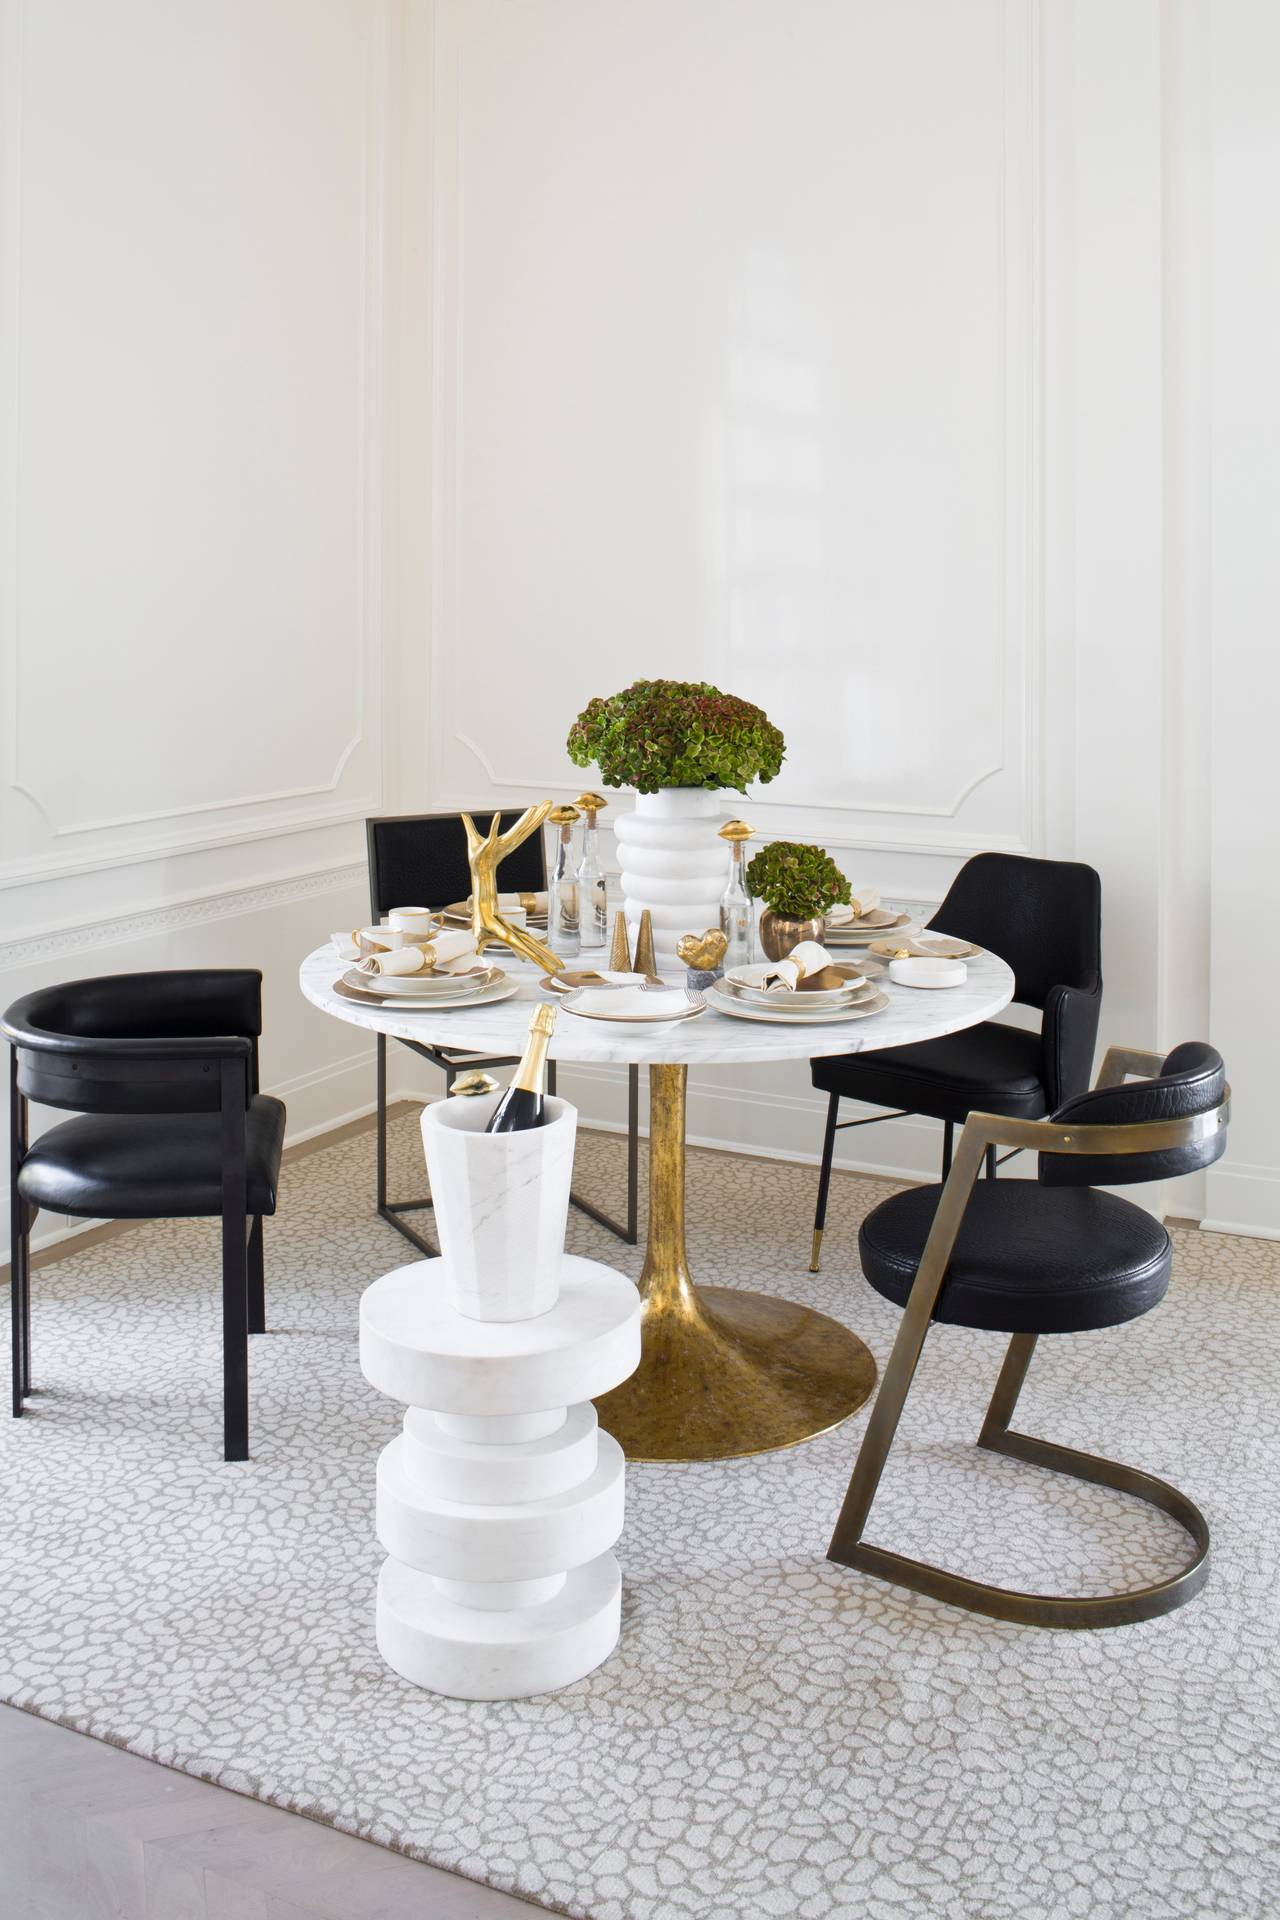 A glamorous mix of bronze and leather, the studio chair's curves and edges create a distinctive, elegant form. The rounded back maximizes comfort while keeping proportions petite.  The studio chair is available in burnished bronze, natural bronze,